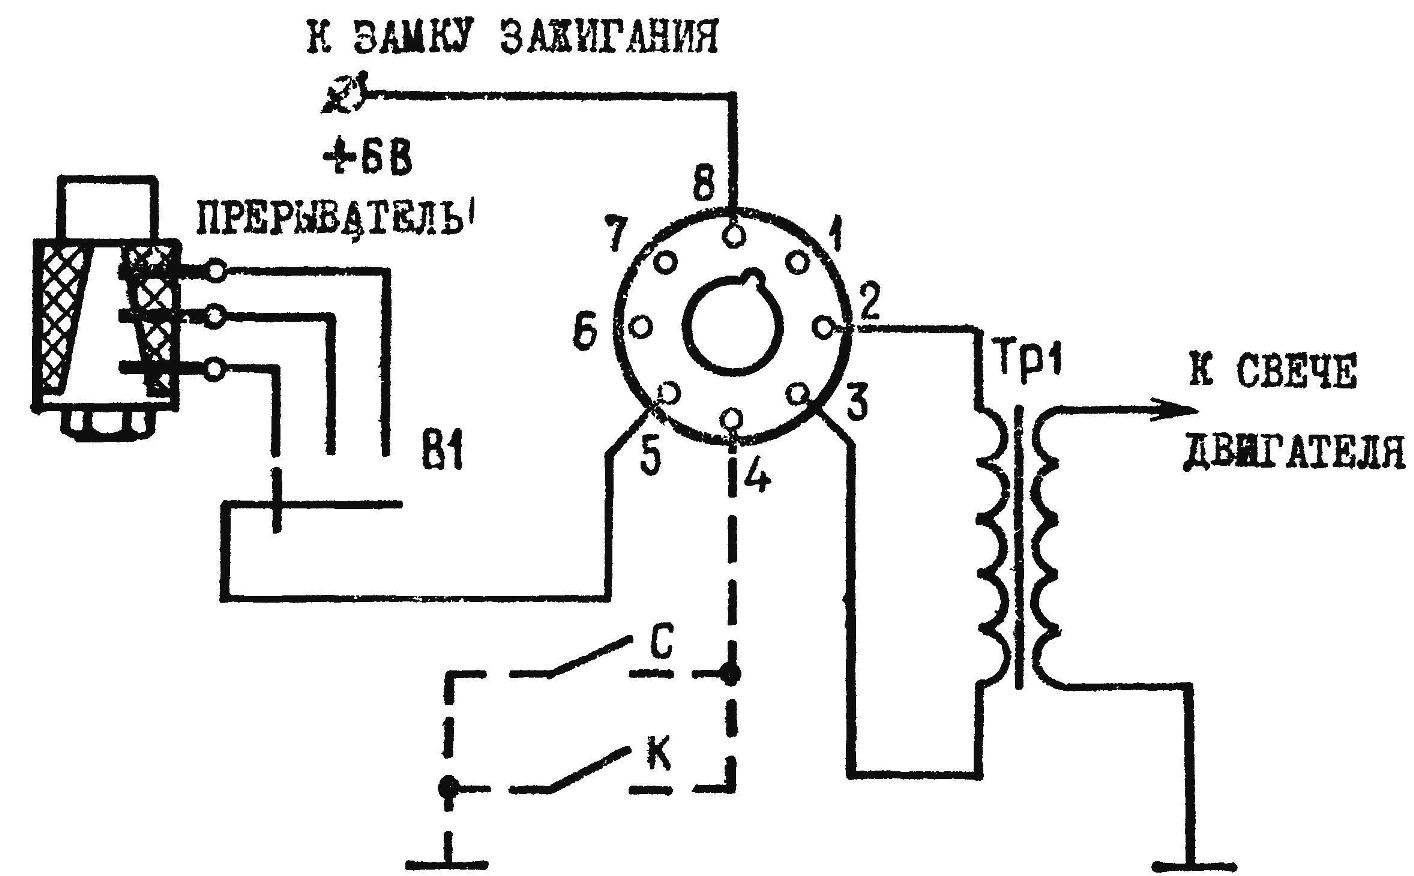 Fig. 2. Wiring diagram for connector to the electrical system of the motorcycle.